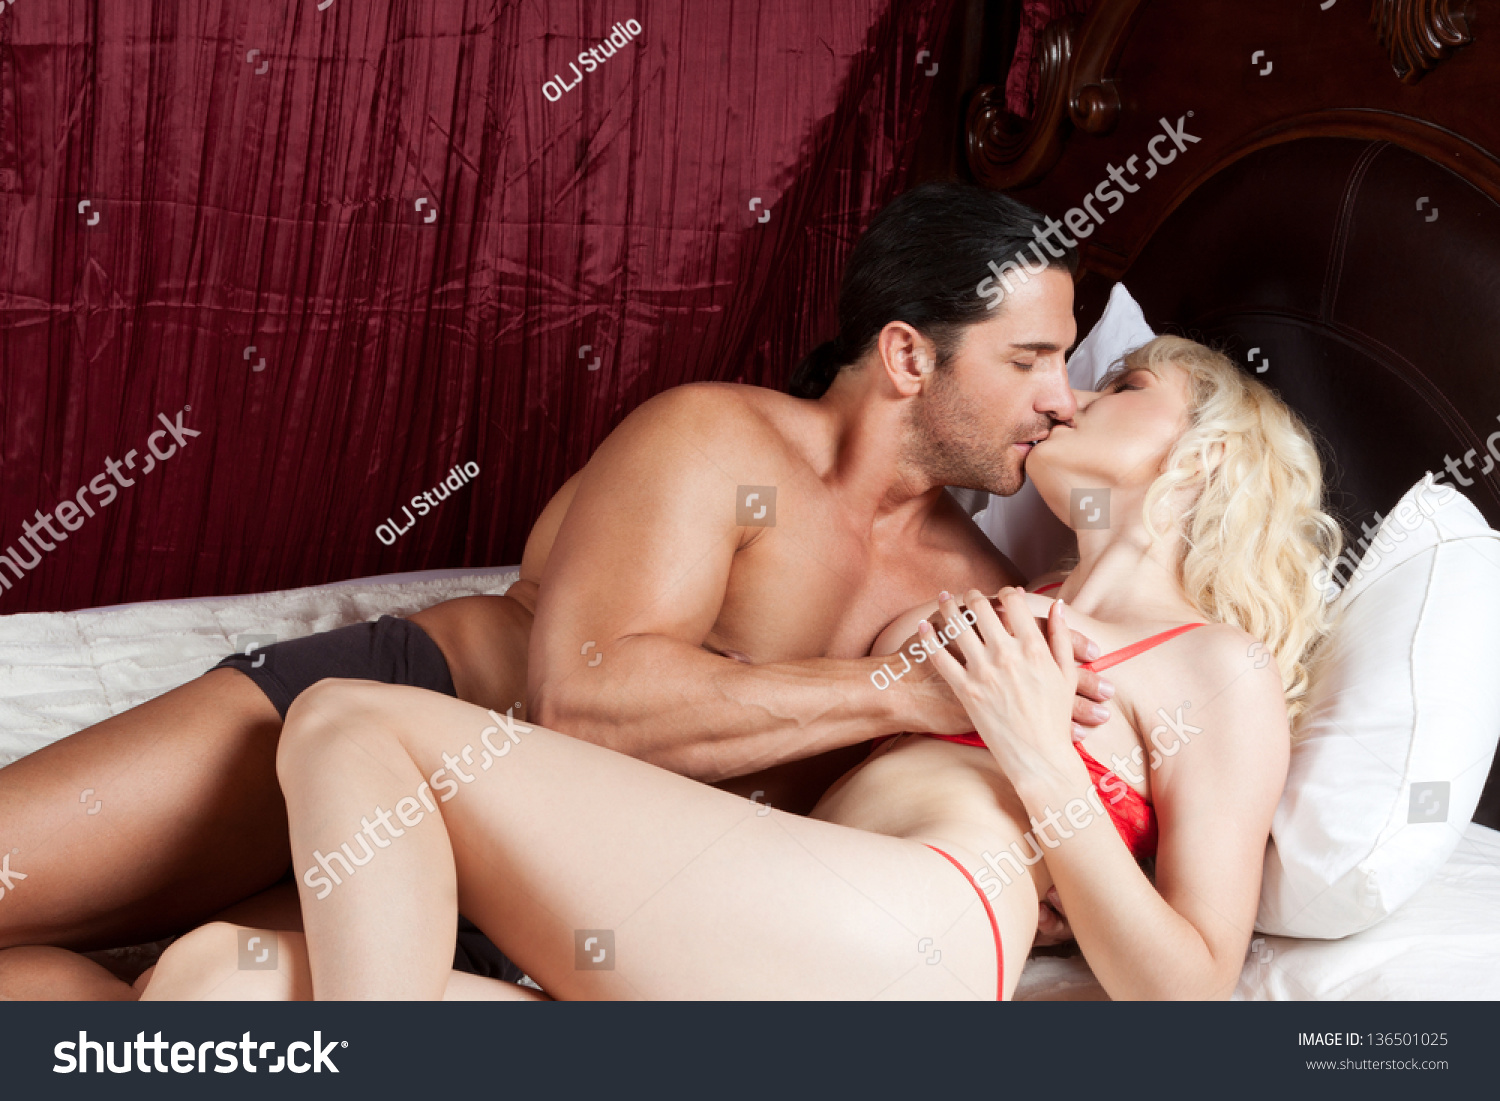 Love Heterosexual Sensual Naked Couple Bed Stock Photo -2790